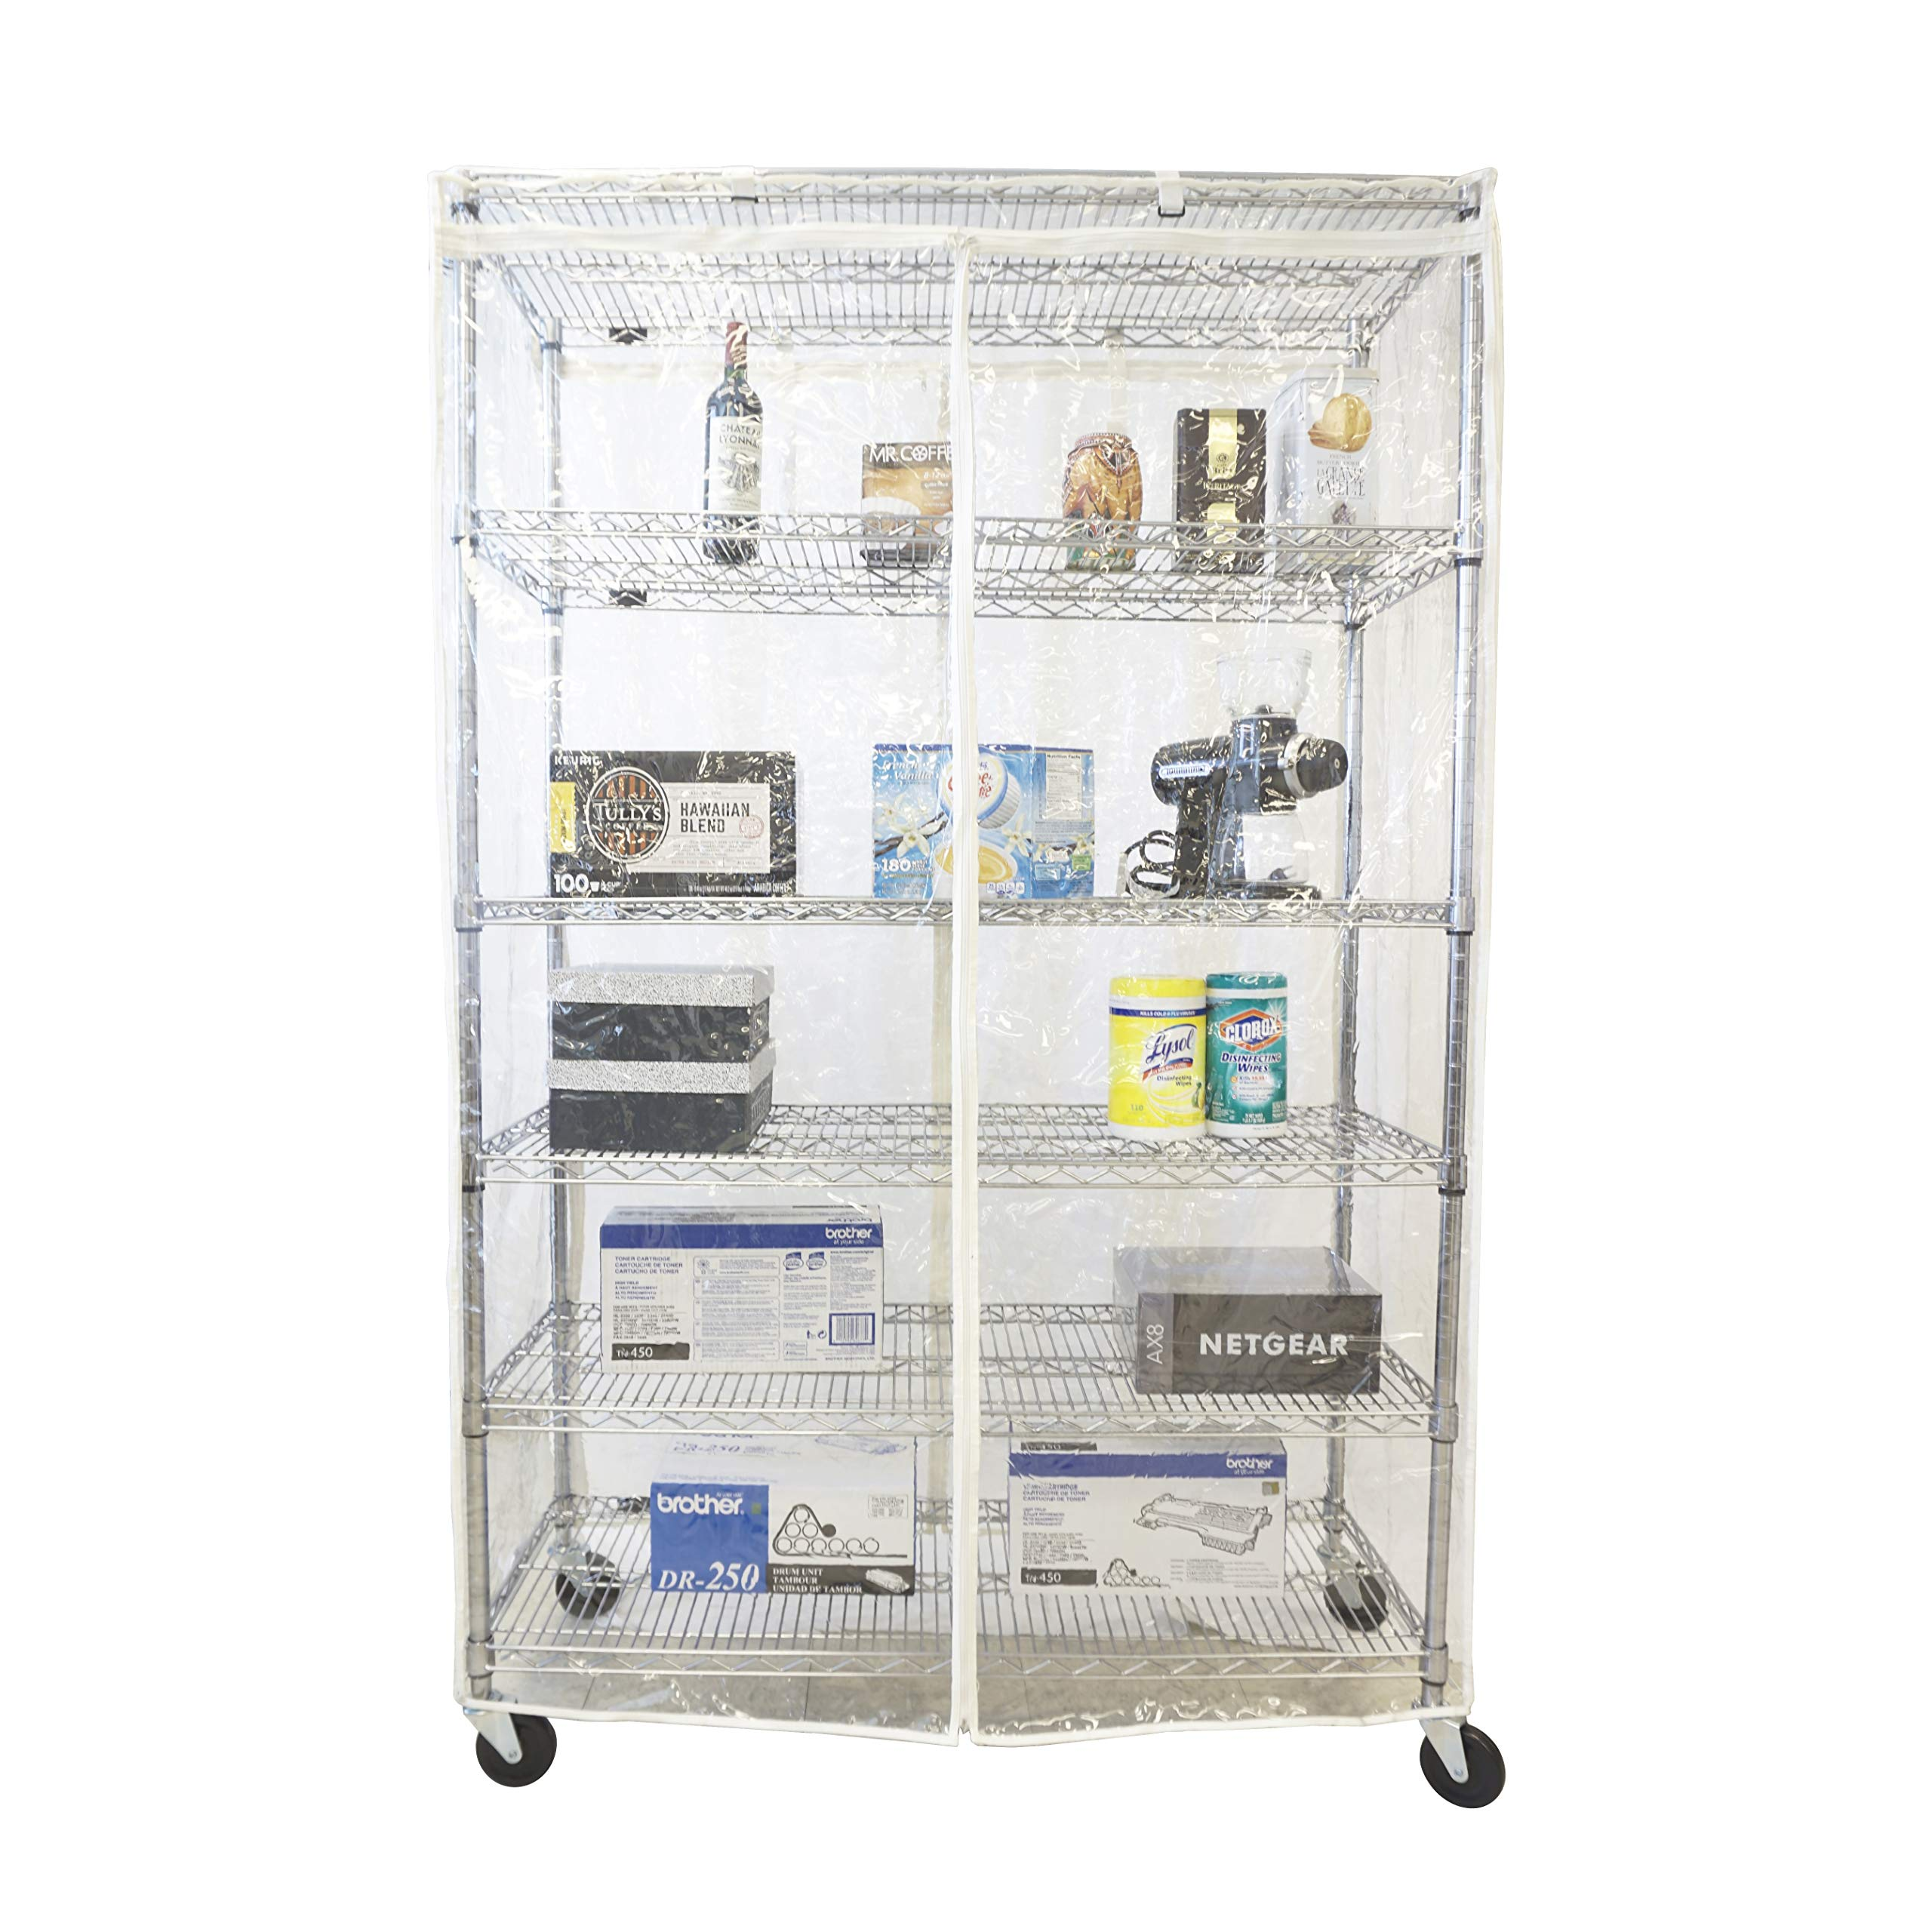 Formosa Covers Storage Shelving Unit Cover All See Through PVC, fits Racks 60'' Wx24 Dx72 H All Clear PVC (Cover only) by Formosa Covers